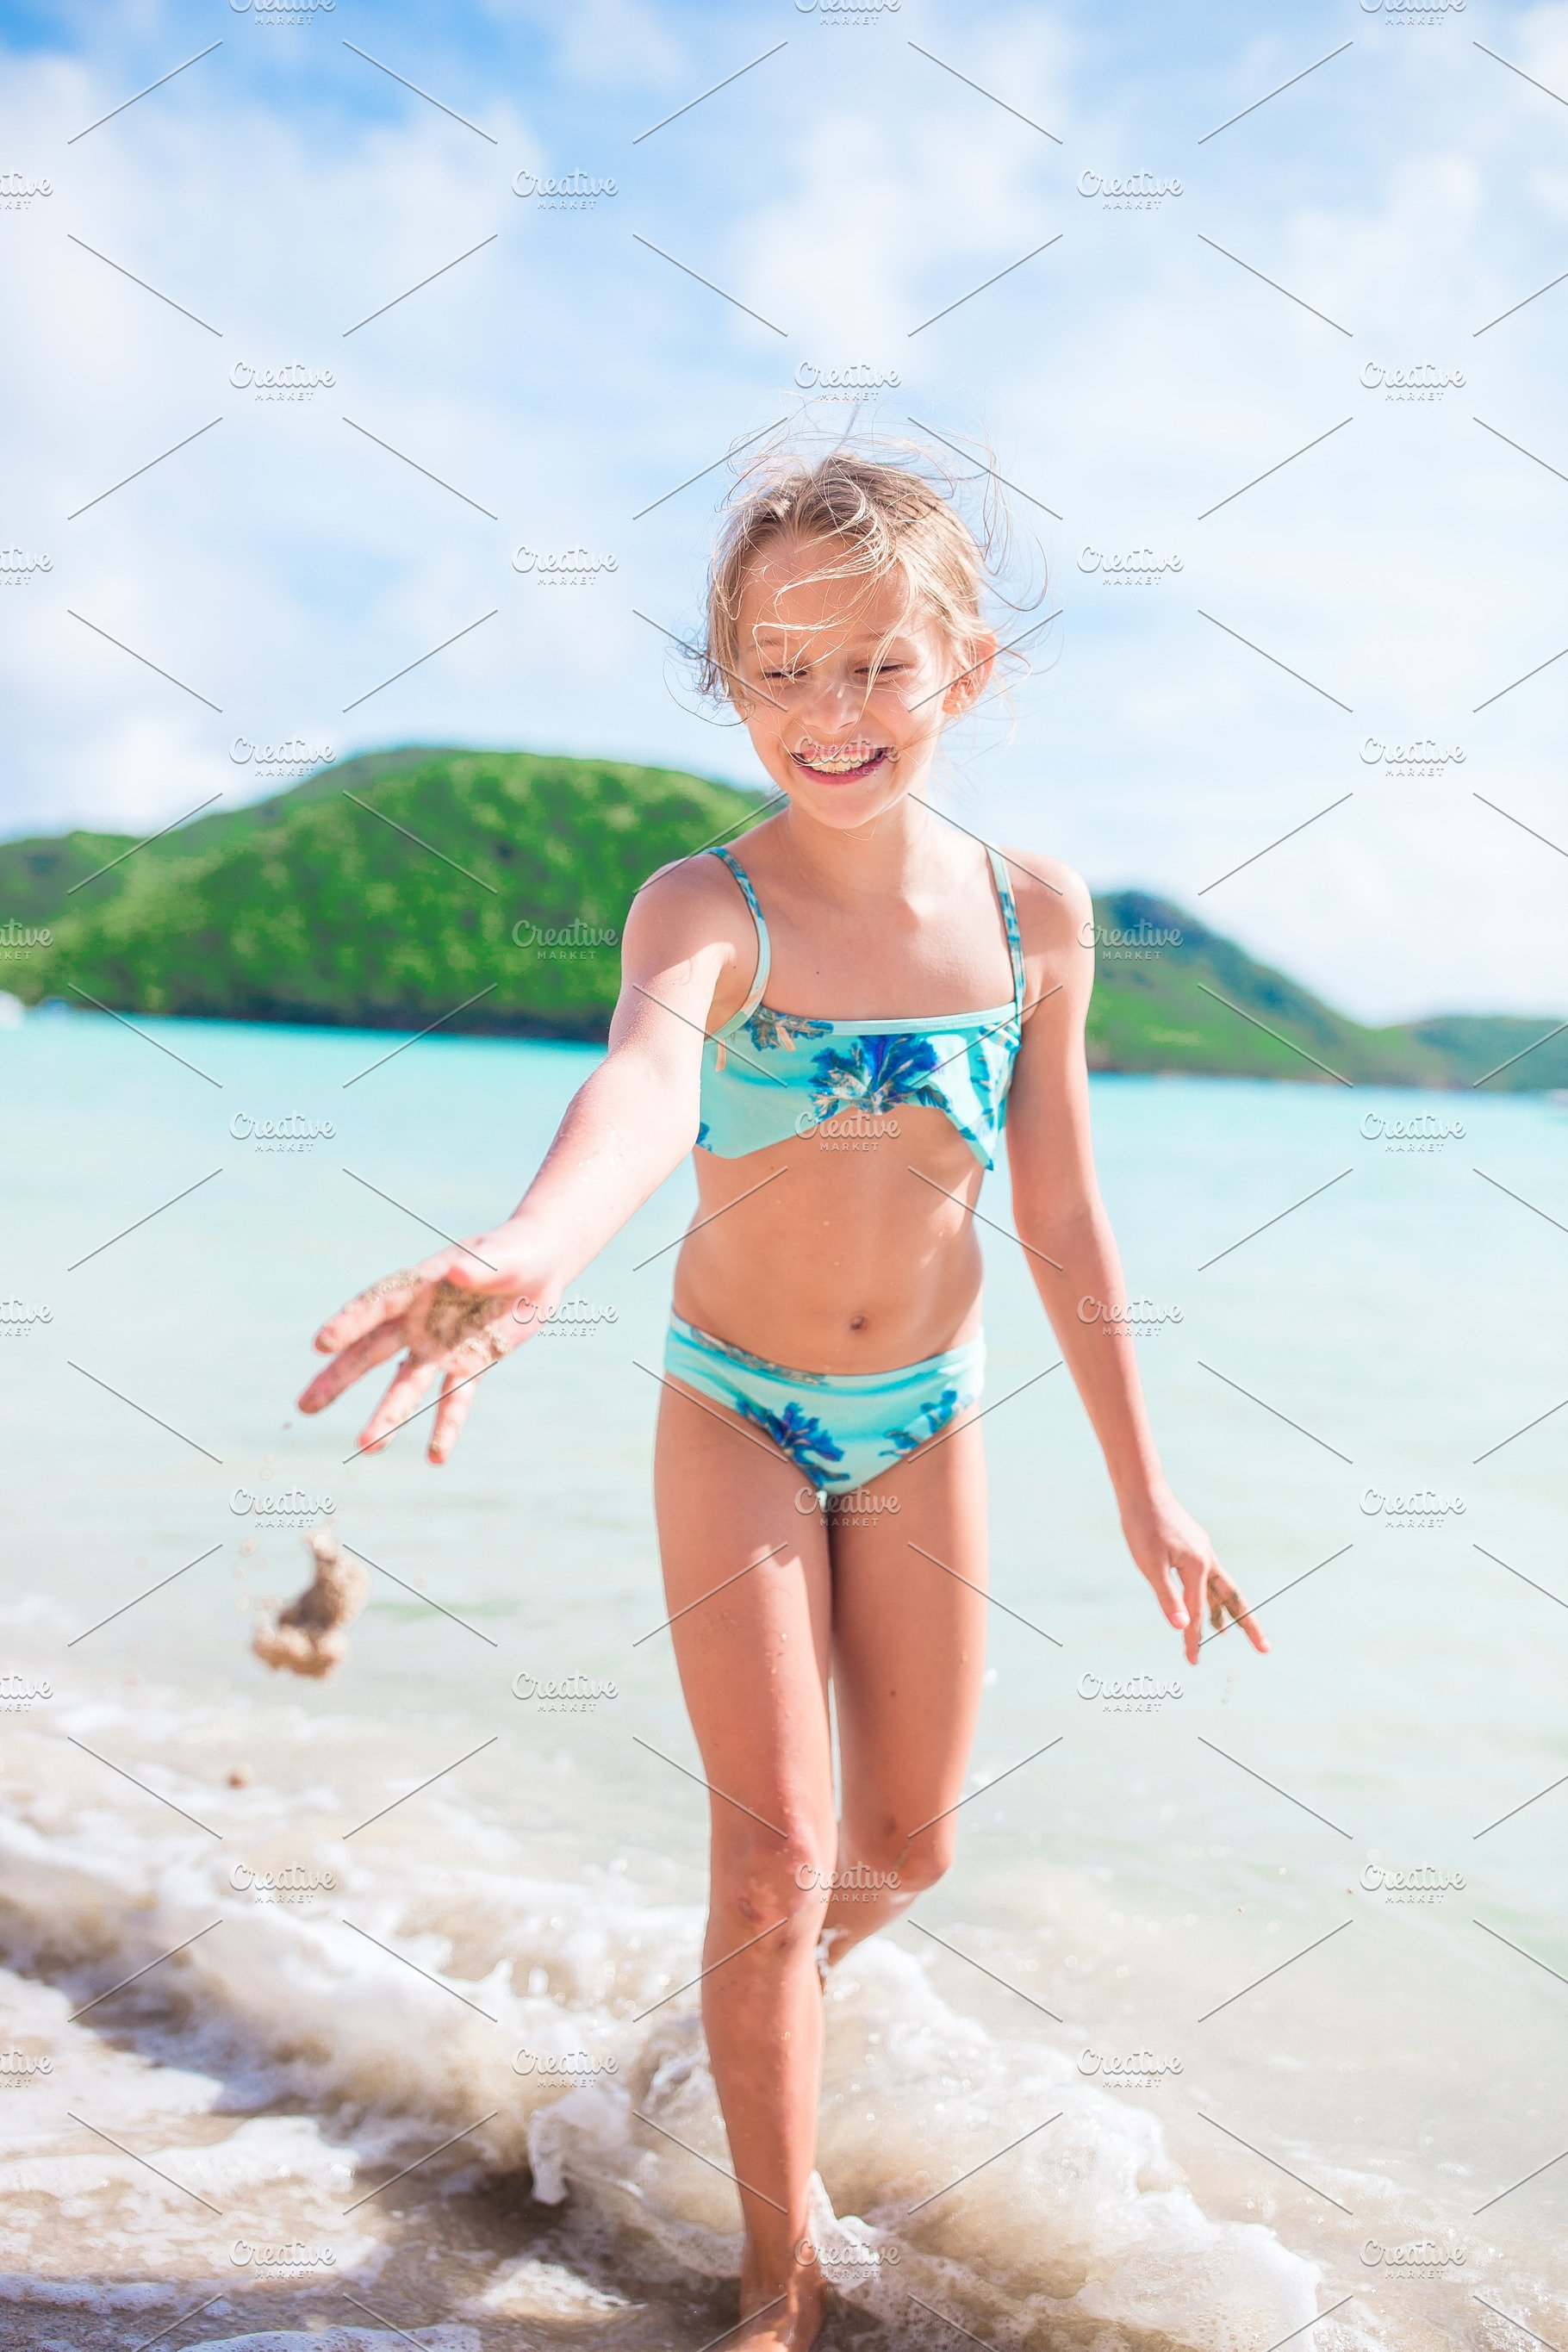 c41eed3a2c28 Little happy girl splashing and having fun in the shallow water. Kid ...